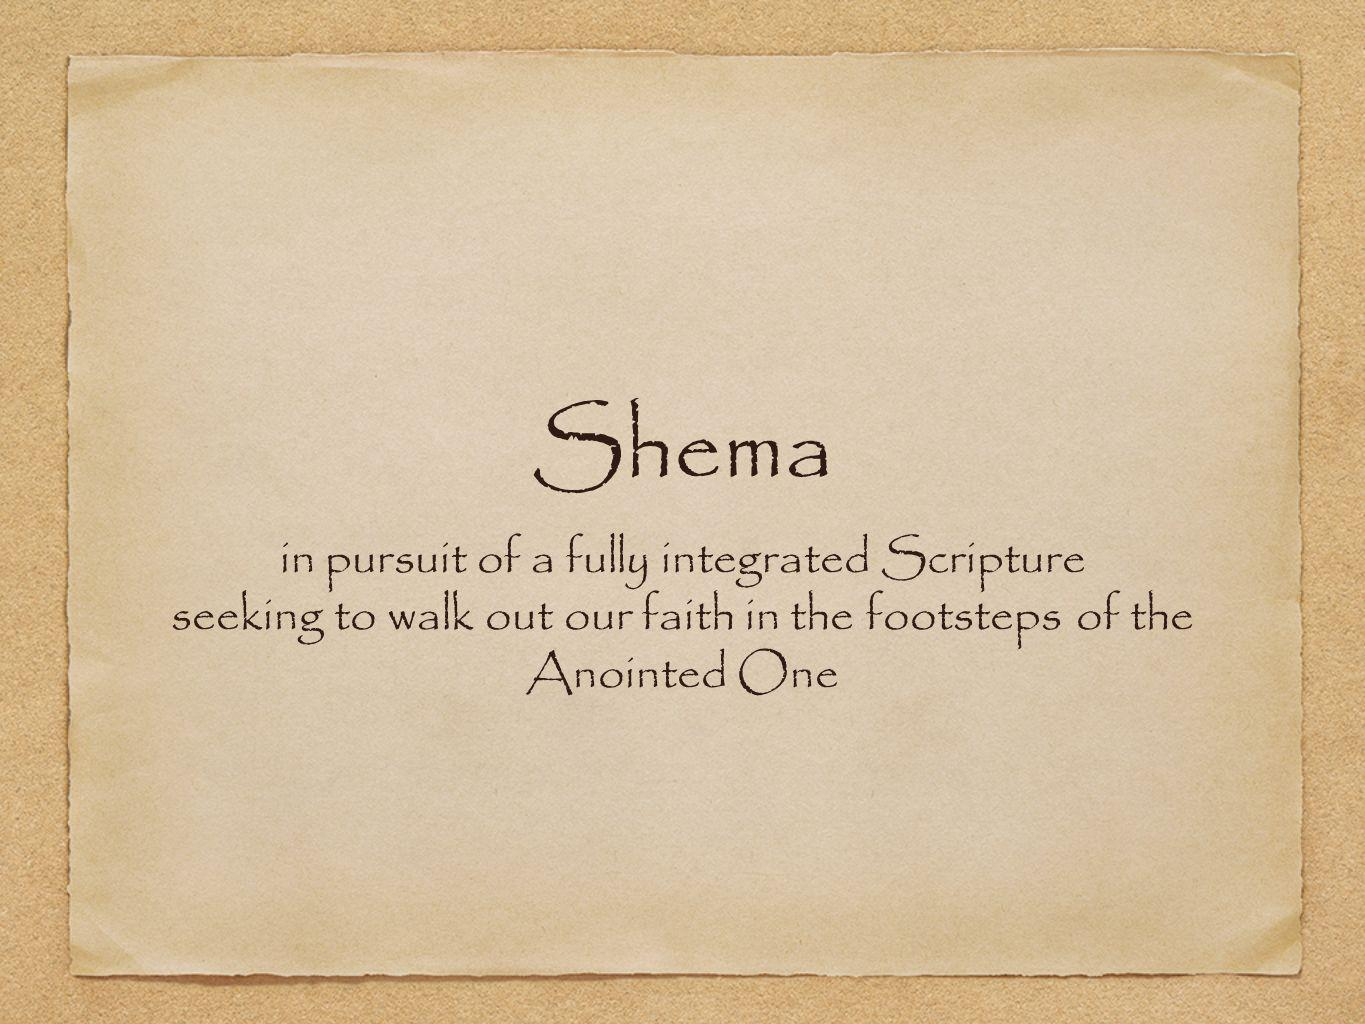 Shema in pursuit of a fully integrated Scripture seeking to walk out our faith in the footsteps of the Anointed One